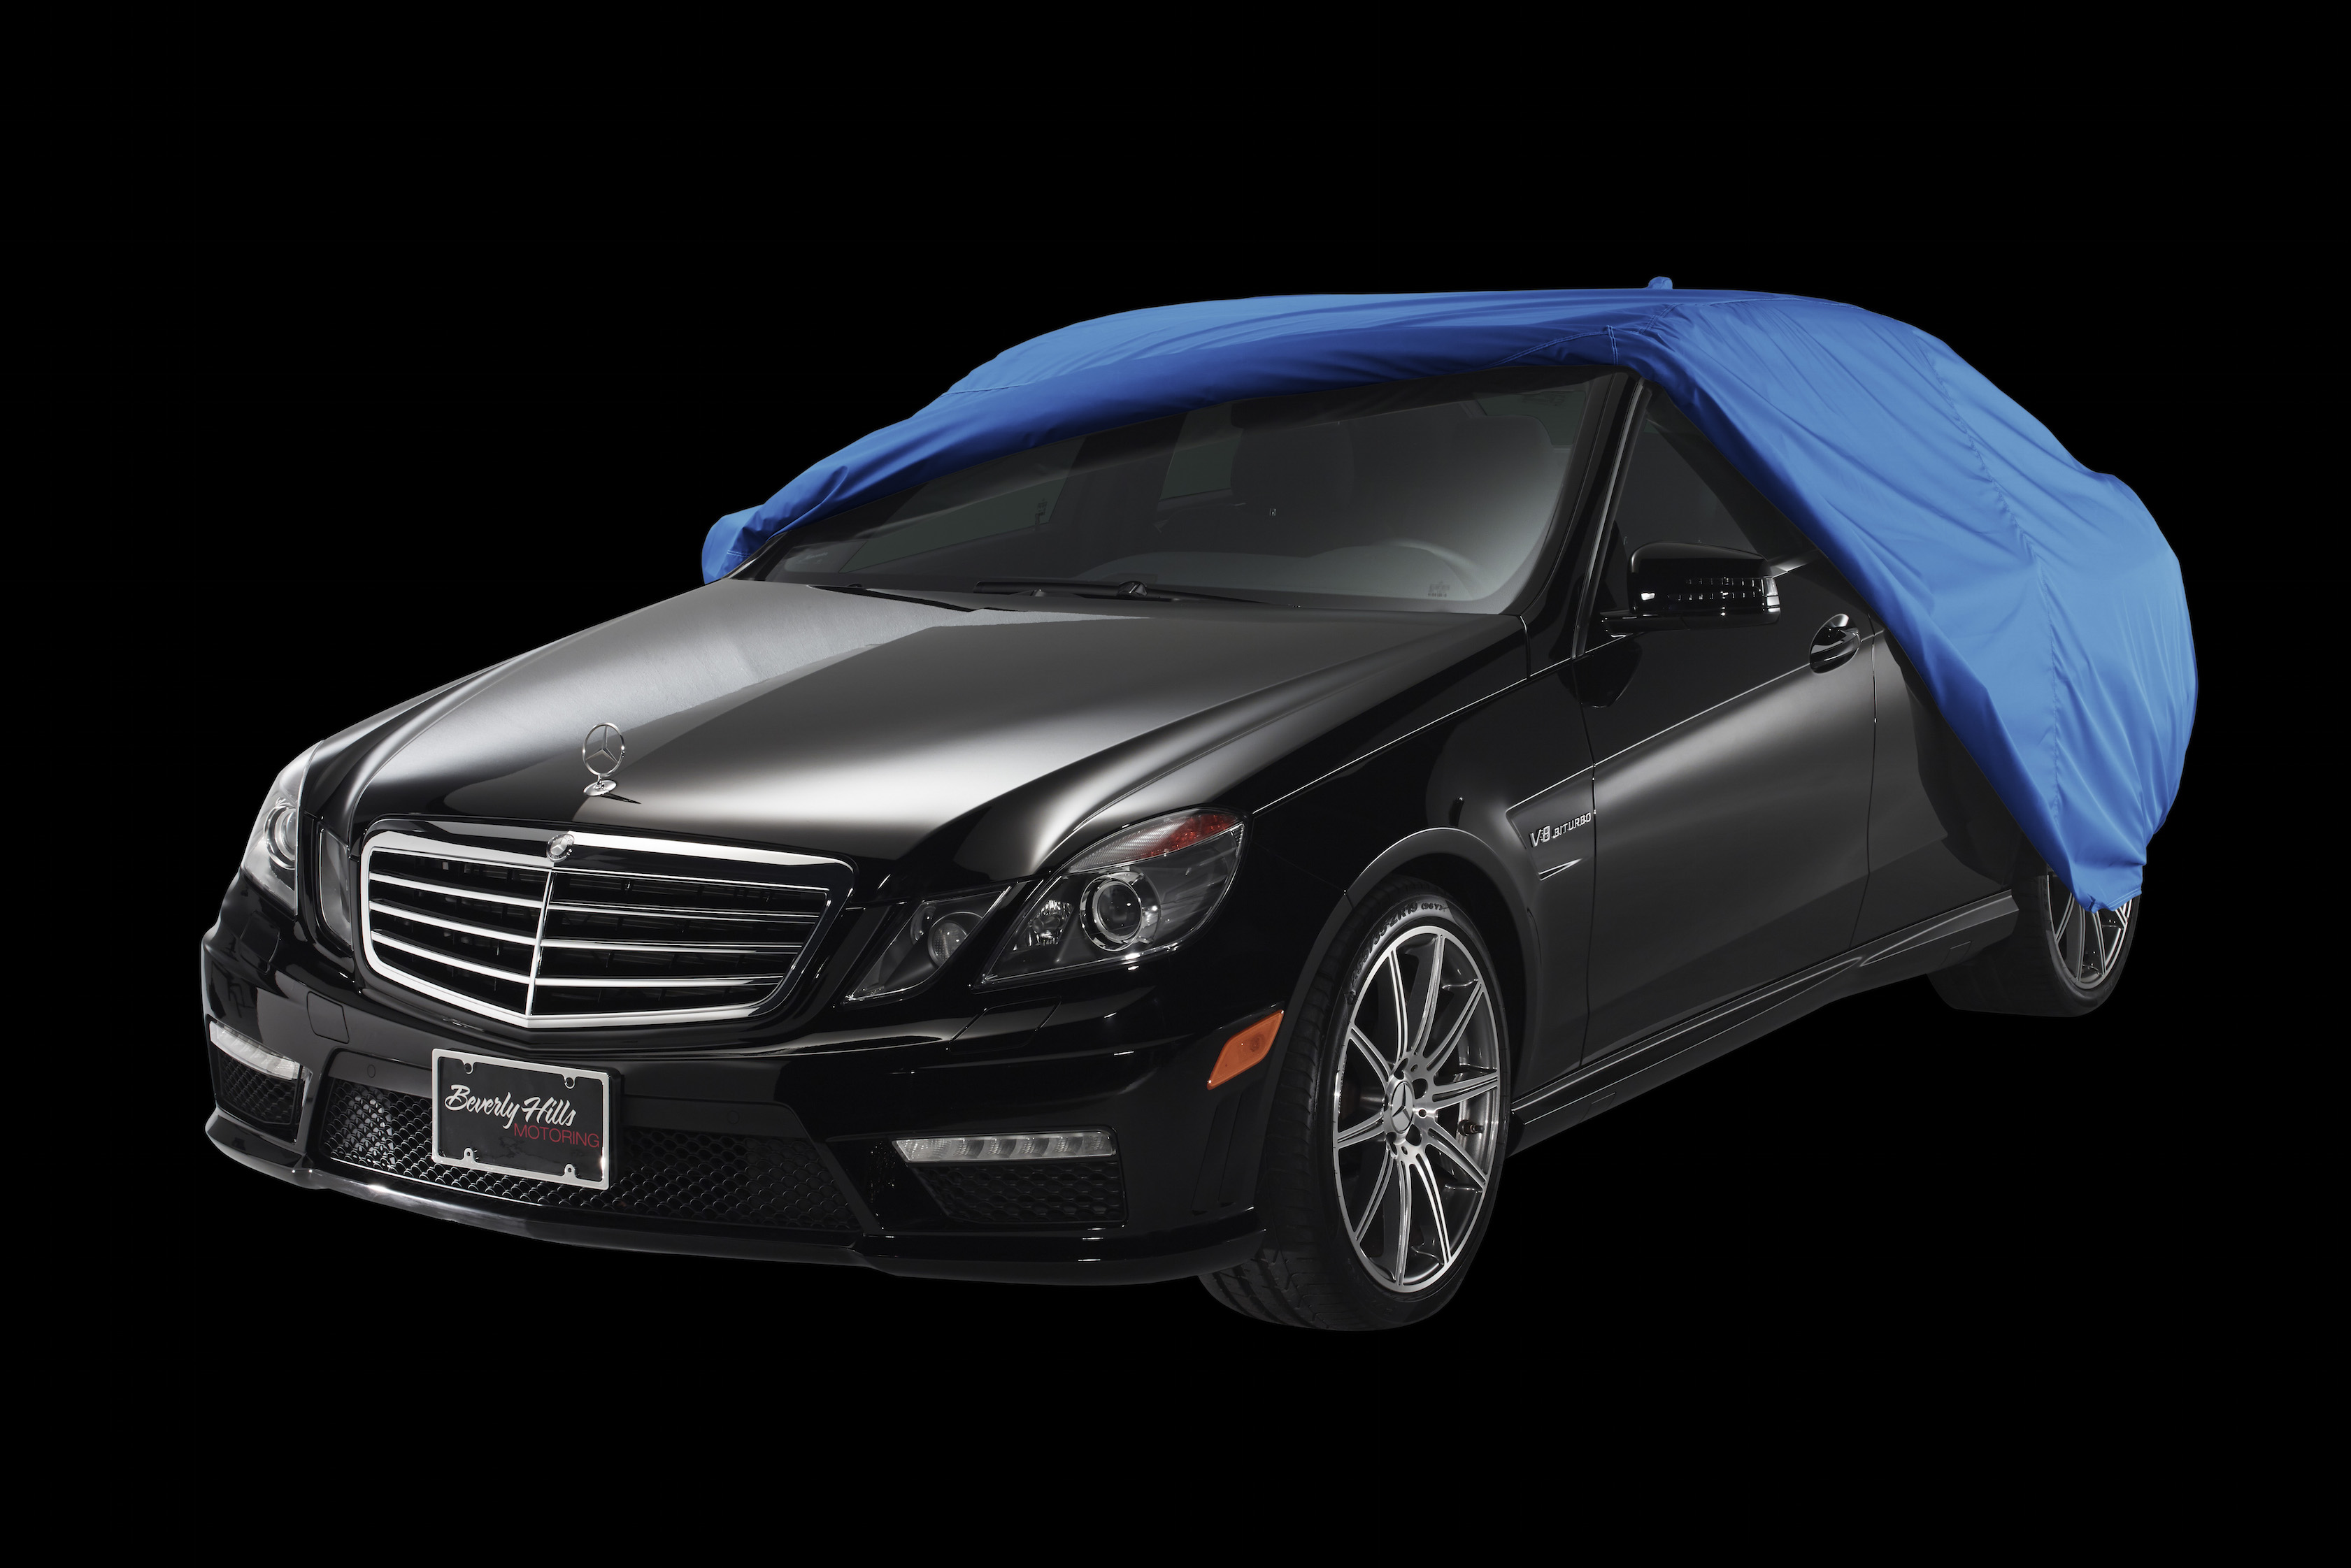 64c22c3e3936 BEVERLY HILLS MOTORING ACCESSORIES OFFERS HIGH-QUALITY CUSTOM CAR ...